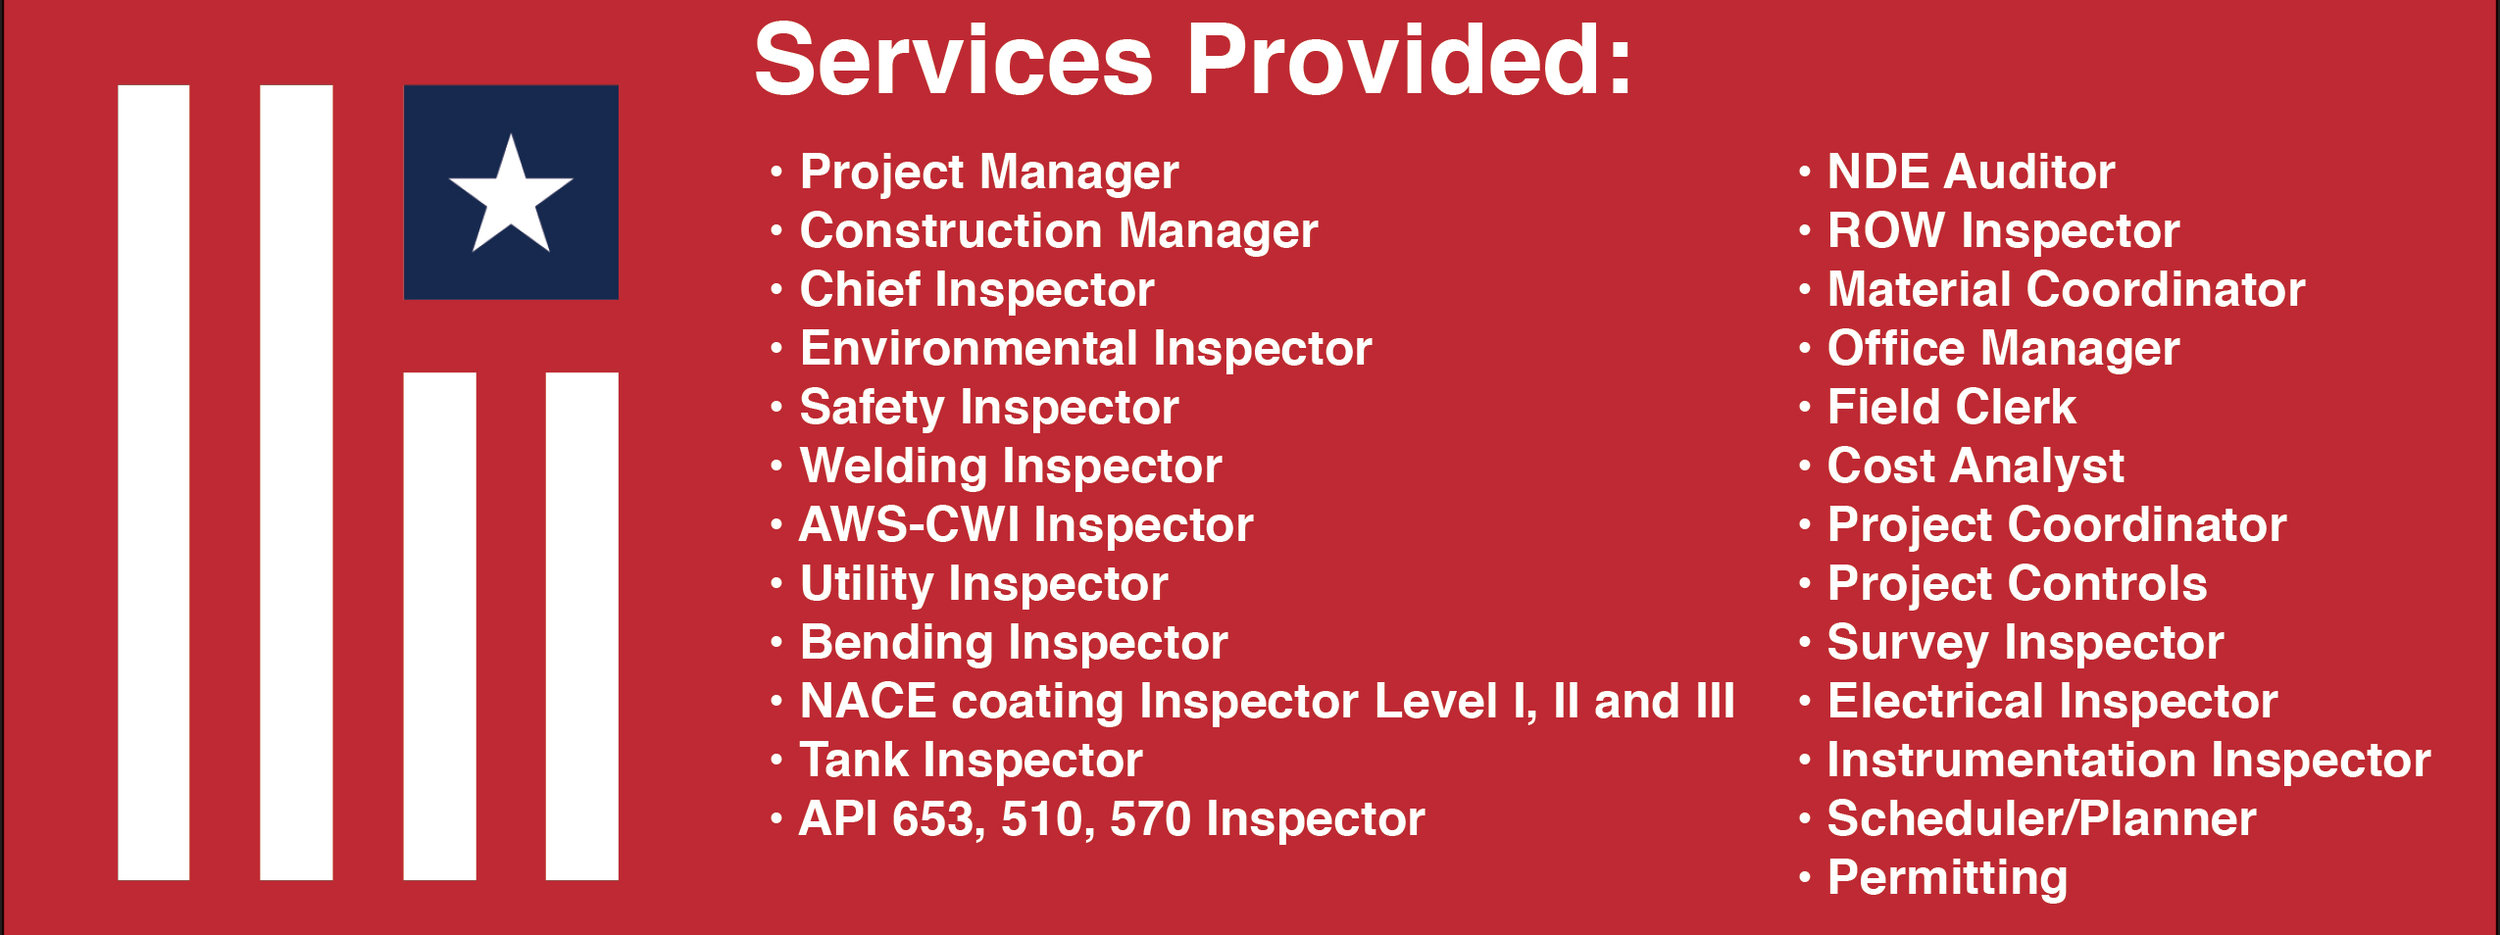 USA Field Services Brochure 1 (1).jpg